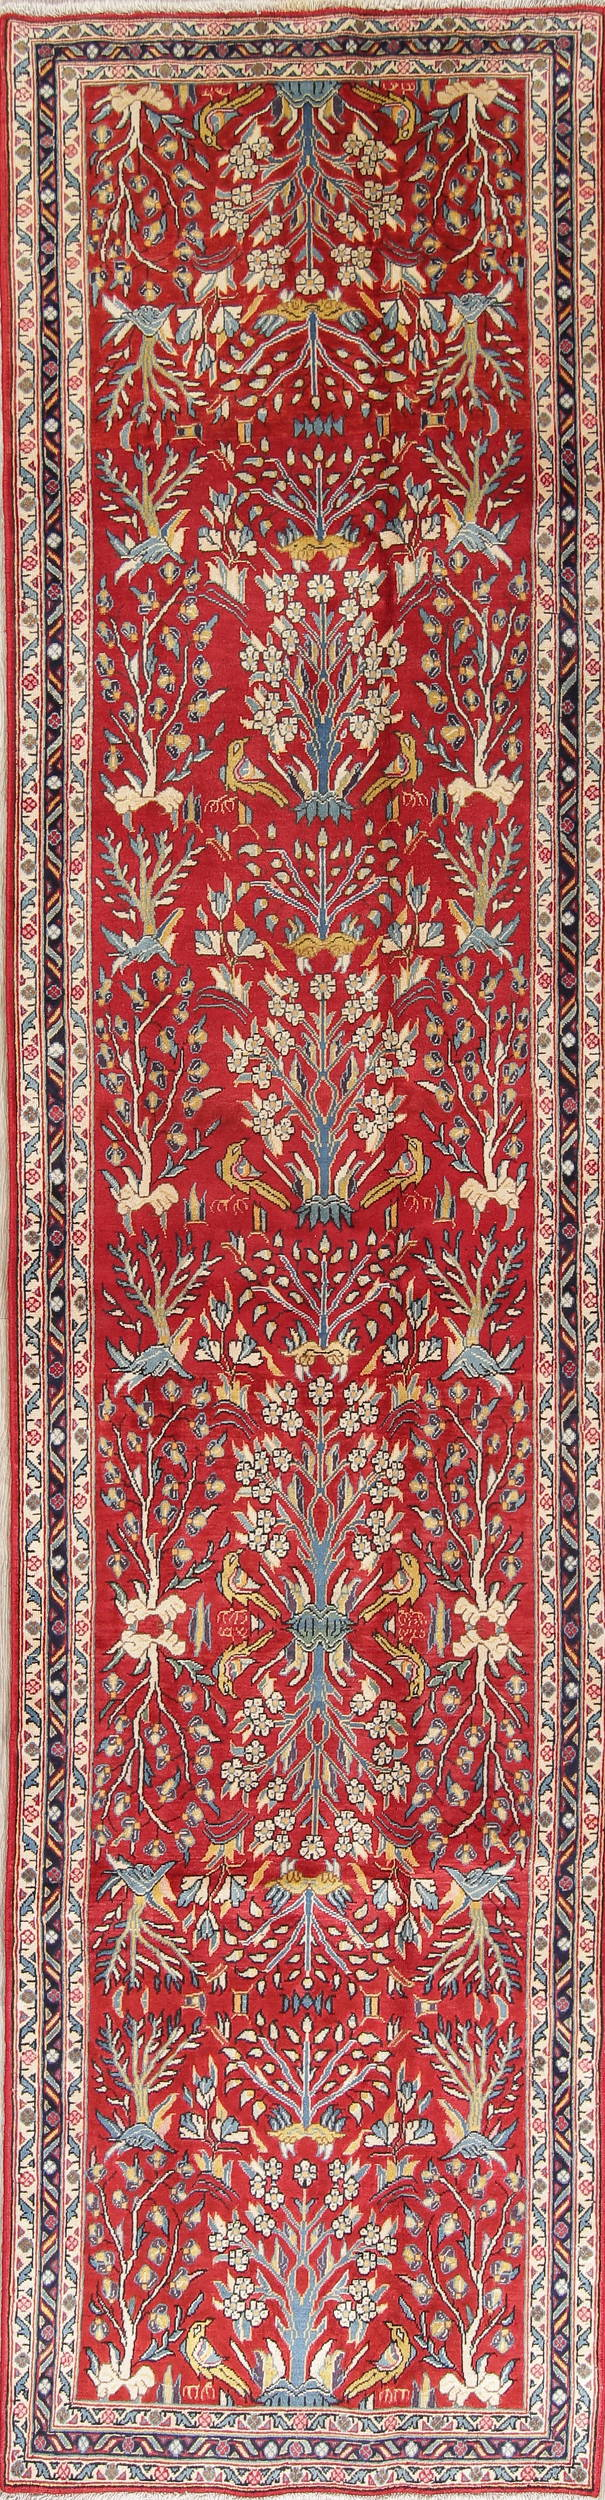 Tree Of Life Floral Sarouk Persian Red Runner Rug Wool 3x12